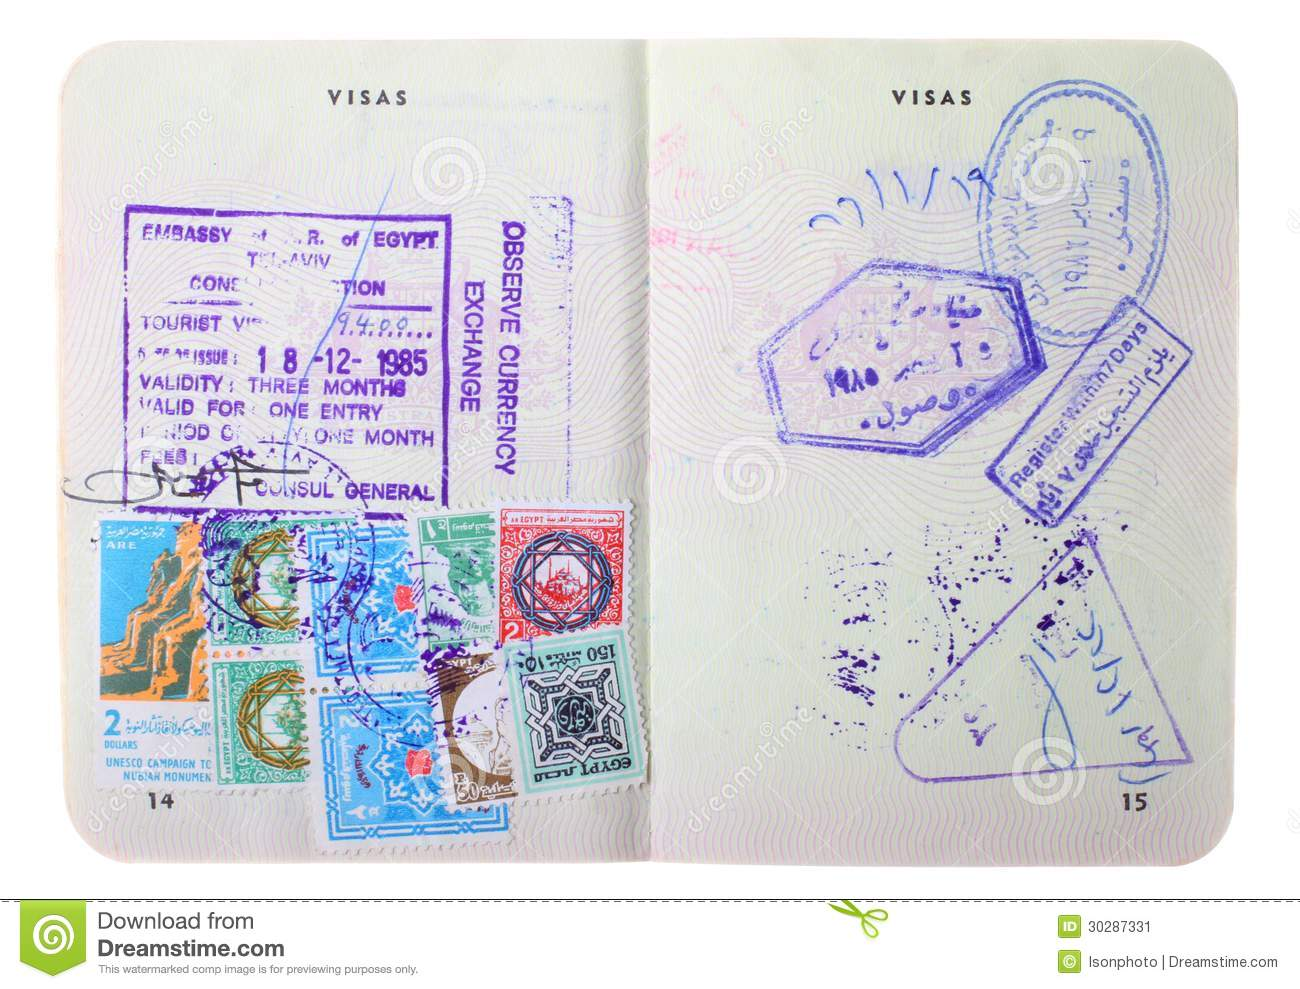 Old Australian Passport With Visa Stamps For Egypt On The Pages Isolated White Background